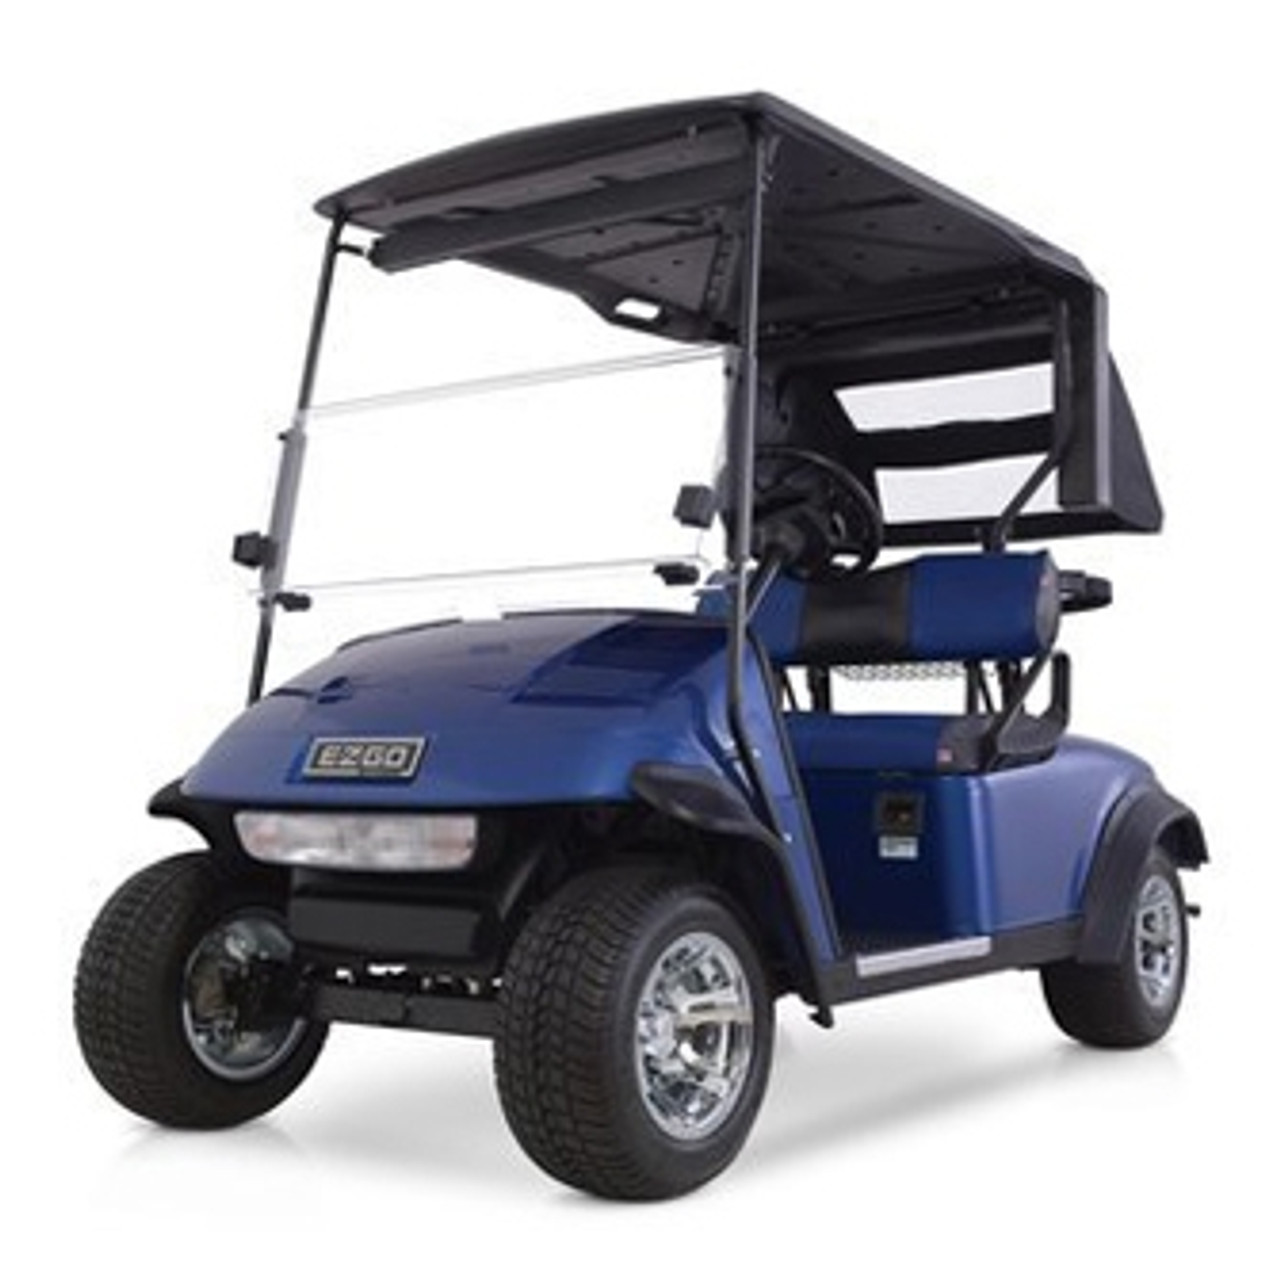 Golf Cart Extended Roofs & Tops - Fast & Free Shipping Today Universal Golf Cart Roof Kit on golf cart windshield kits, golf cart speedometer kits, golf cart light kits, golf cart seat belt kits, golf cart trunk kits, golf cart speaker kits, golf cart canopy kits, golf cart dump bed kits, golf cart dash kits, golf cart dashboard kits, golf cart garage kits, golf cart carpet kits, golf cart frame kits, golf cart building kits, golf cart horn kits,